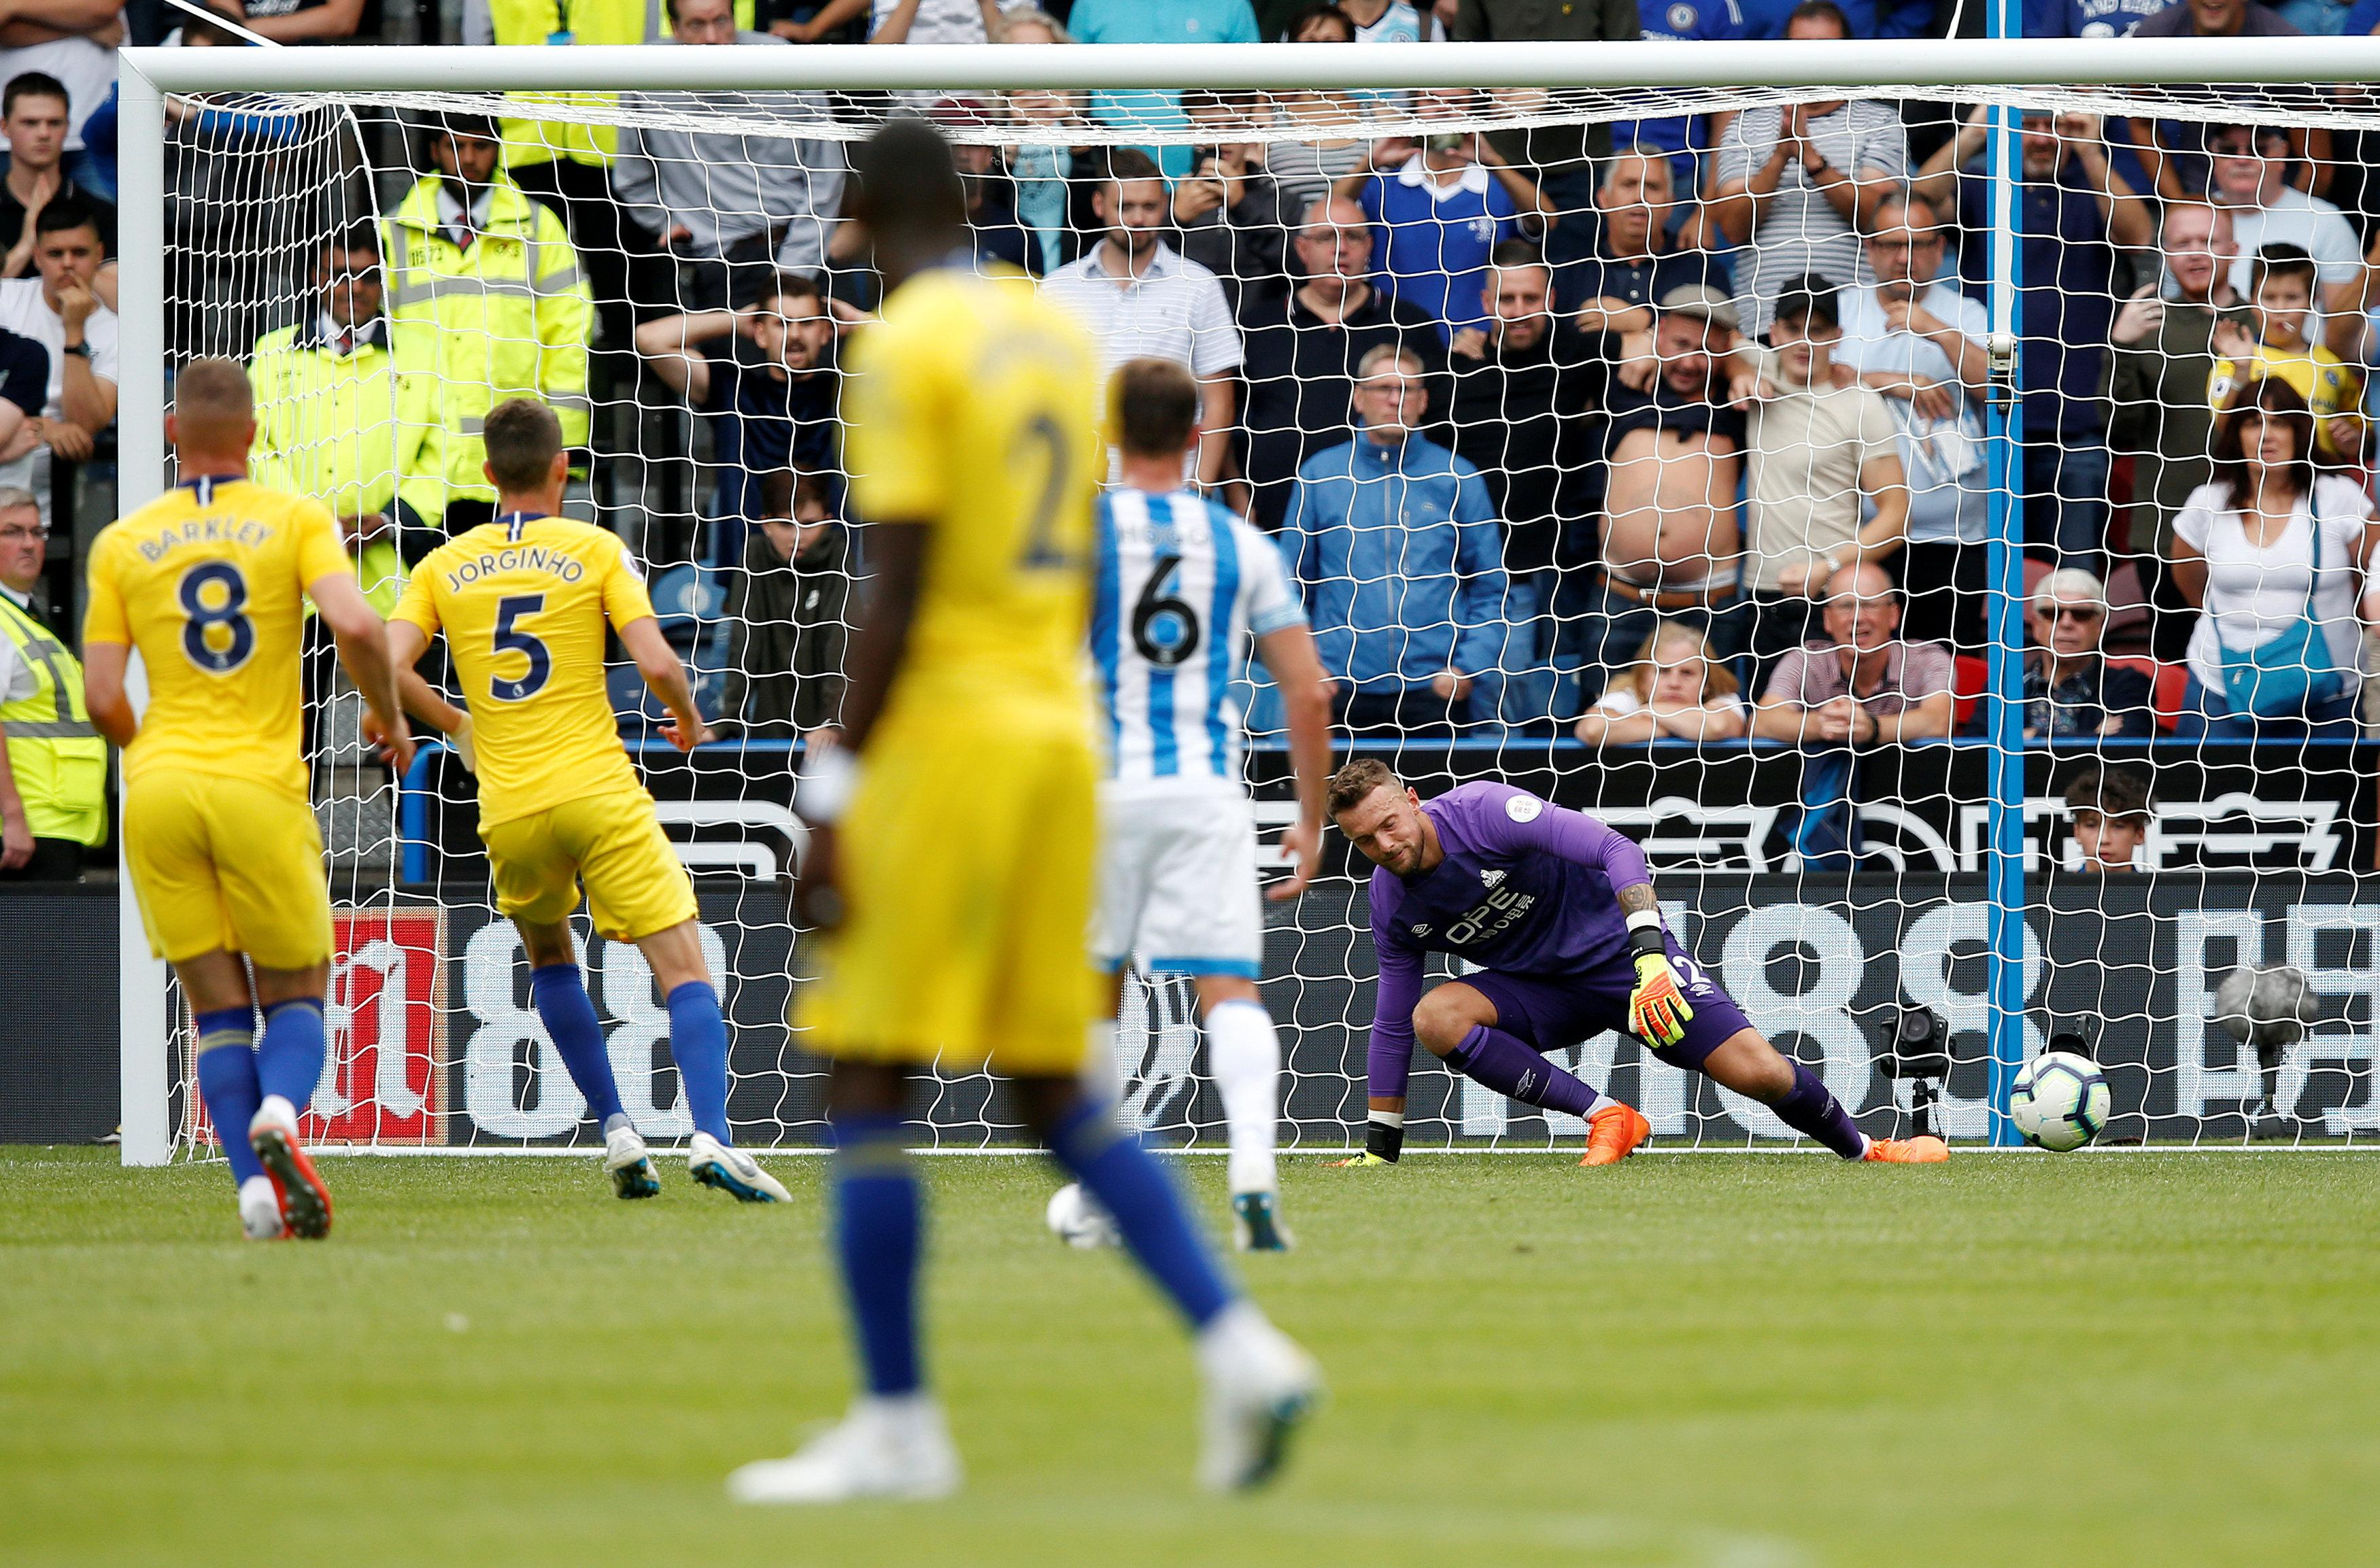 Jorginho scored a crazy penalty as Chelsea took a 2-0 lead at Huddersfield